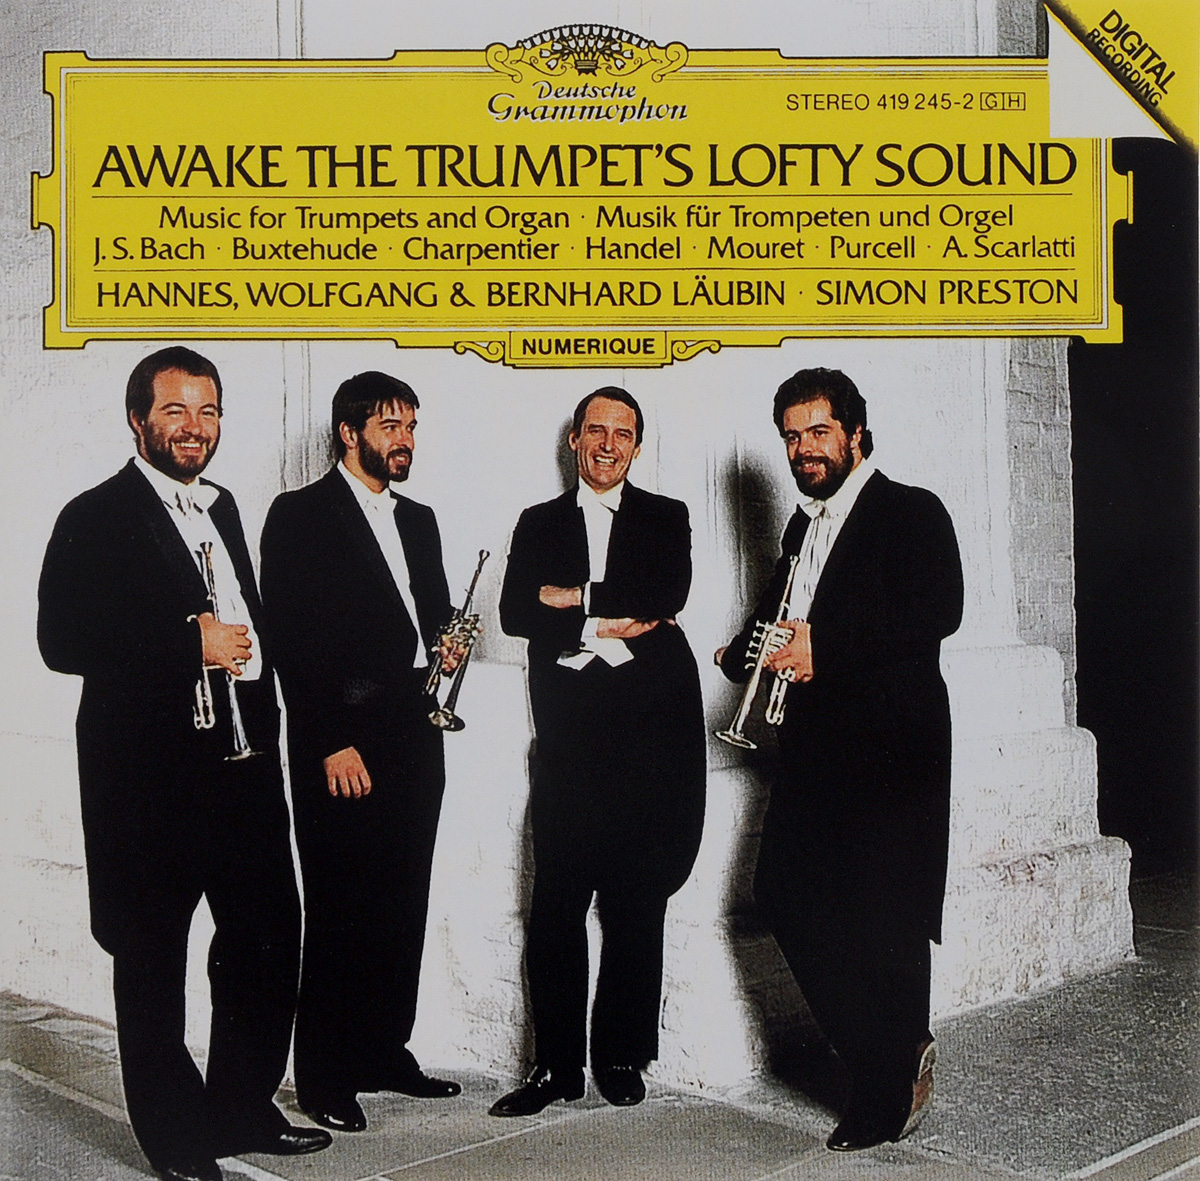 Саймон Престон,Hannes Laubin,Bernhard Laubin,Wolfgang Laubin,Norbert Schmitt Simon Preston. Awake The Trumpet's Lofty Sound саймон престон hannes laubin bernhard laubin wolfgang laubin norbert schmitt simon preston awake the trumpet s lofty sound